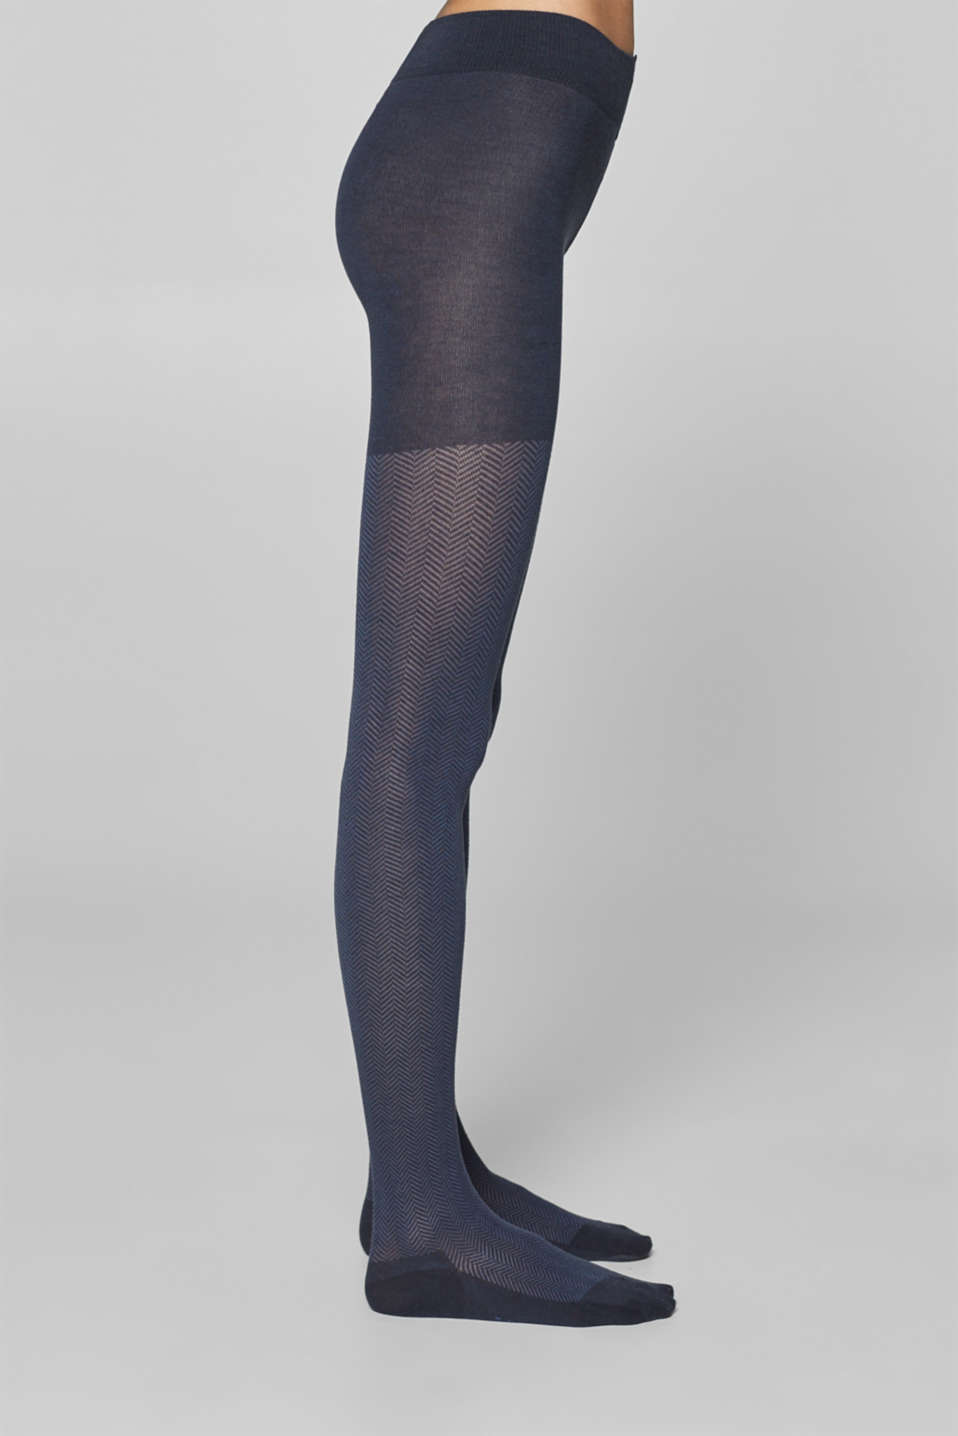 Esprit - Tights with a herringbone pattern